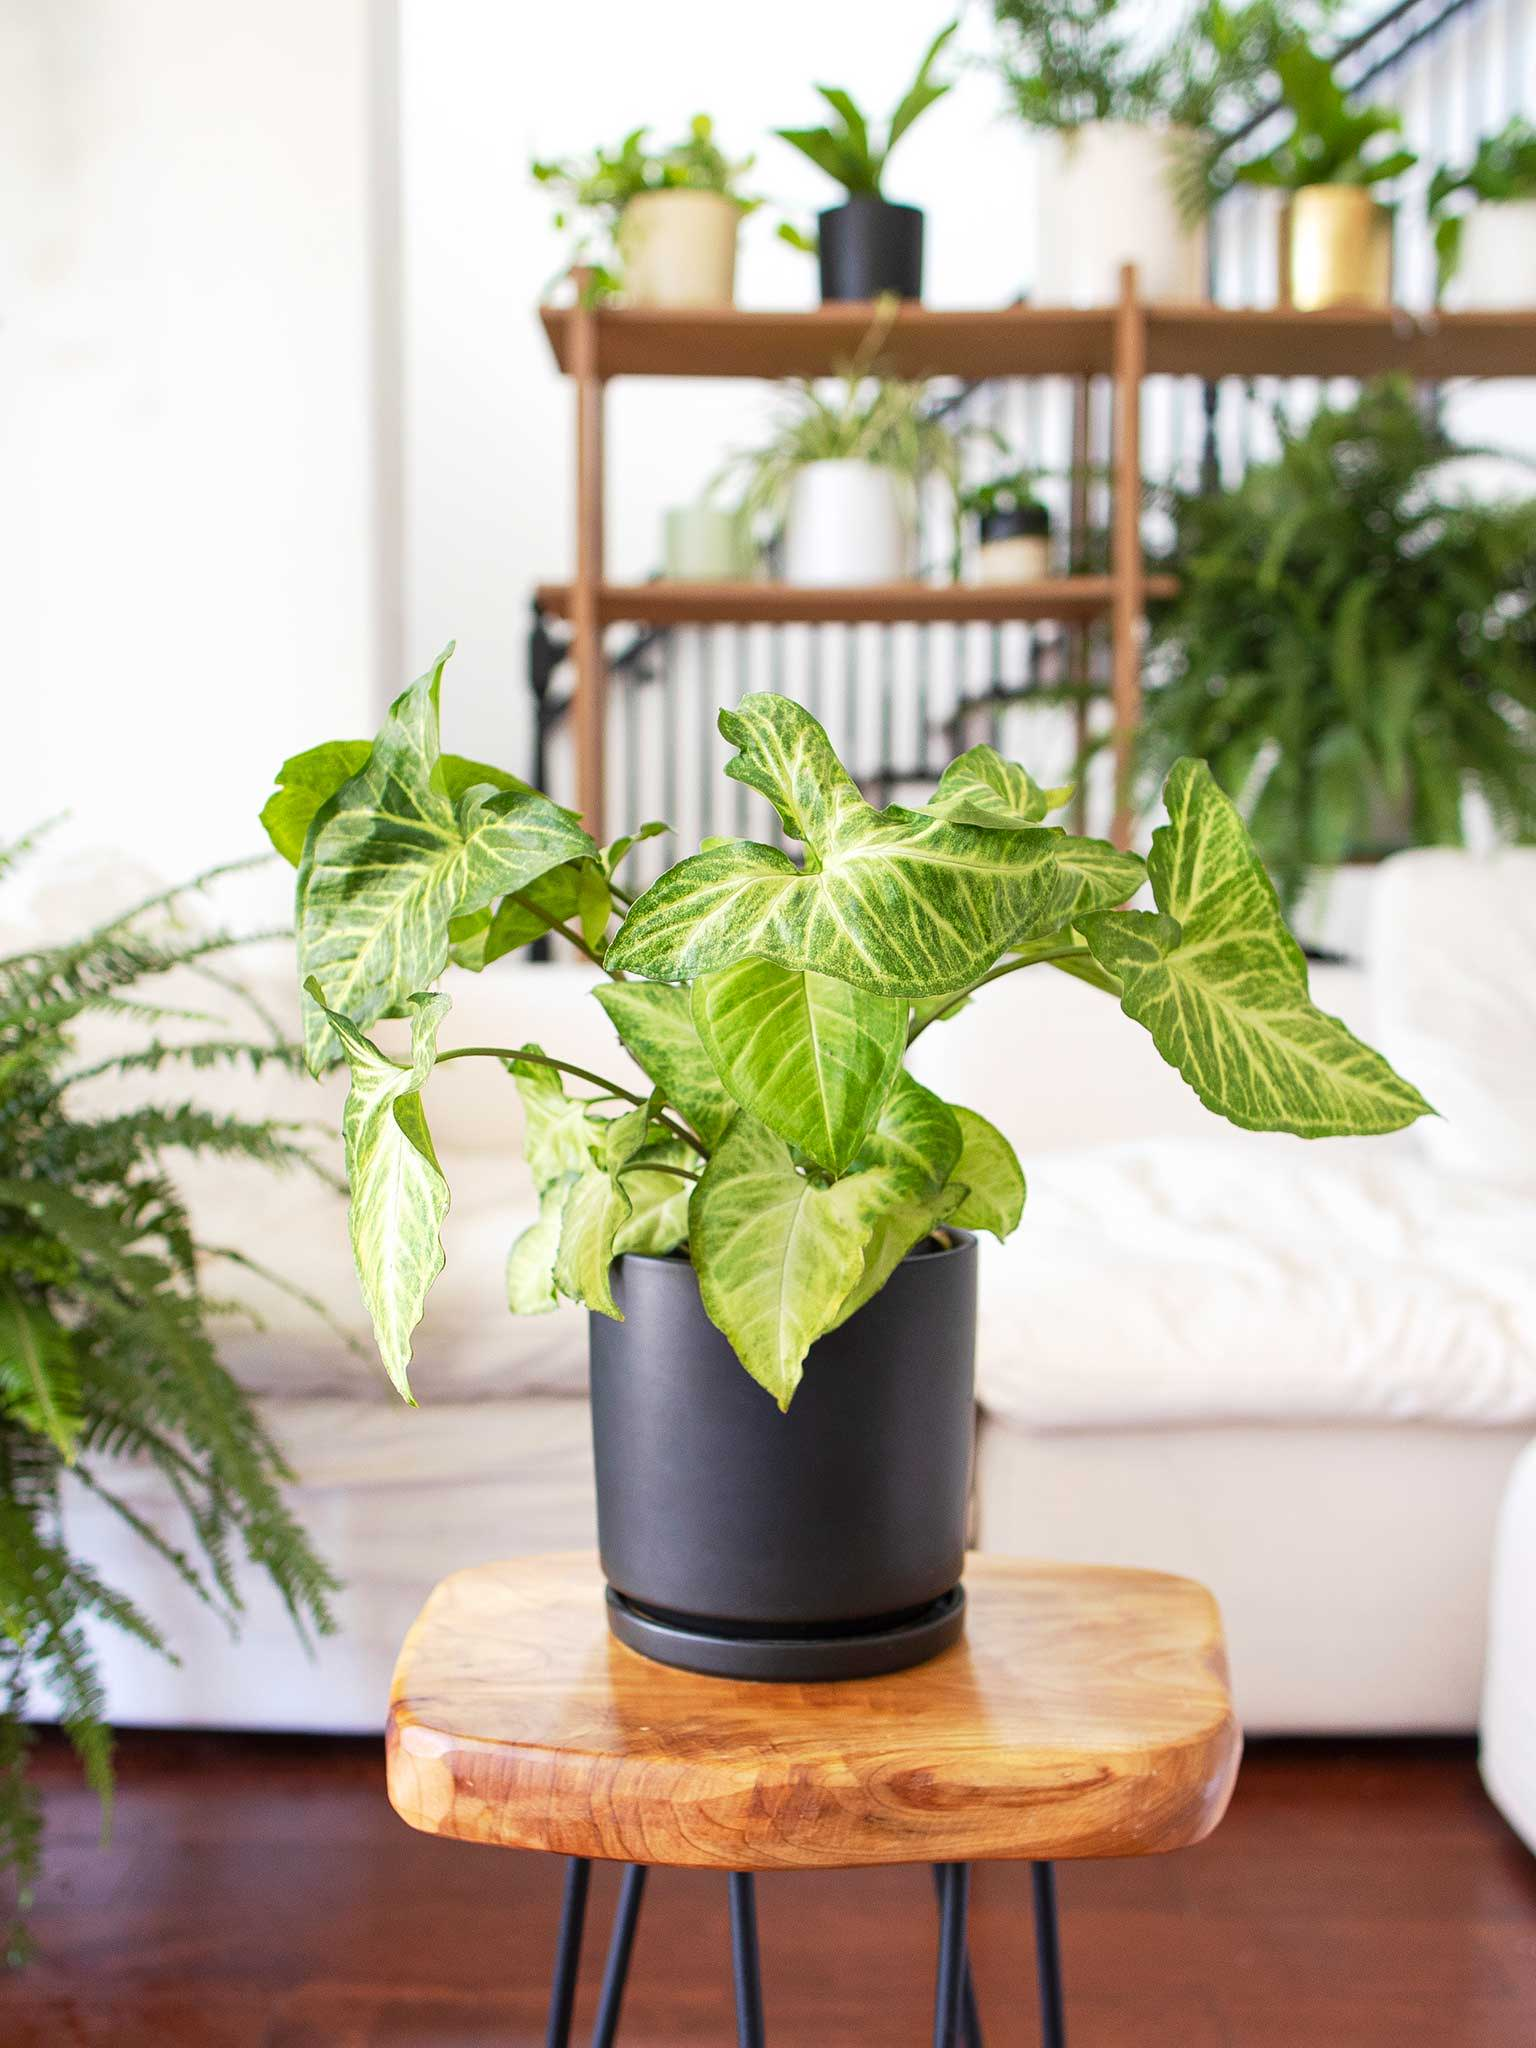 Potted white butterfly arrowhead plant